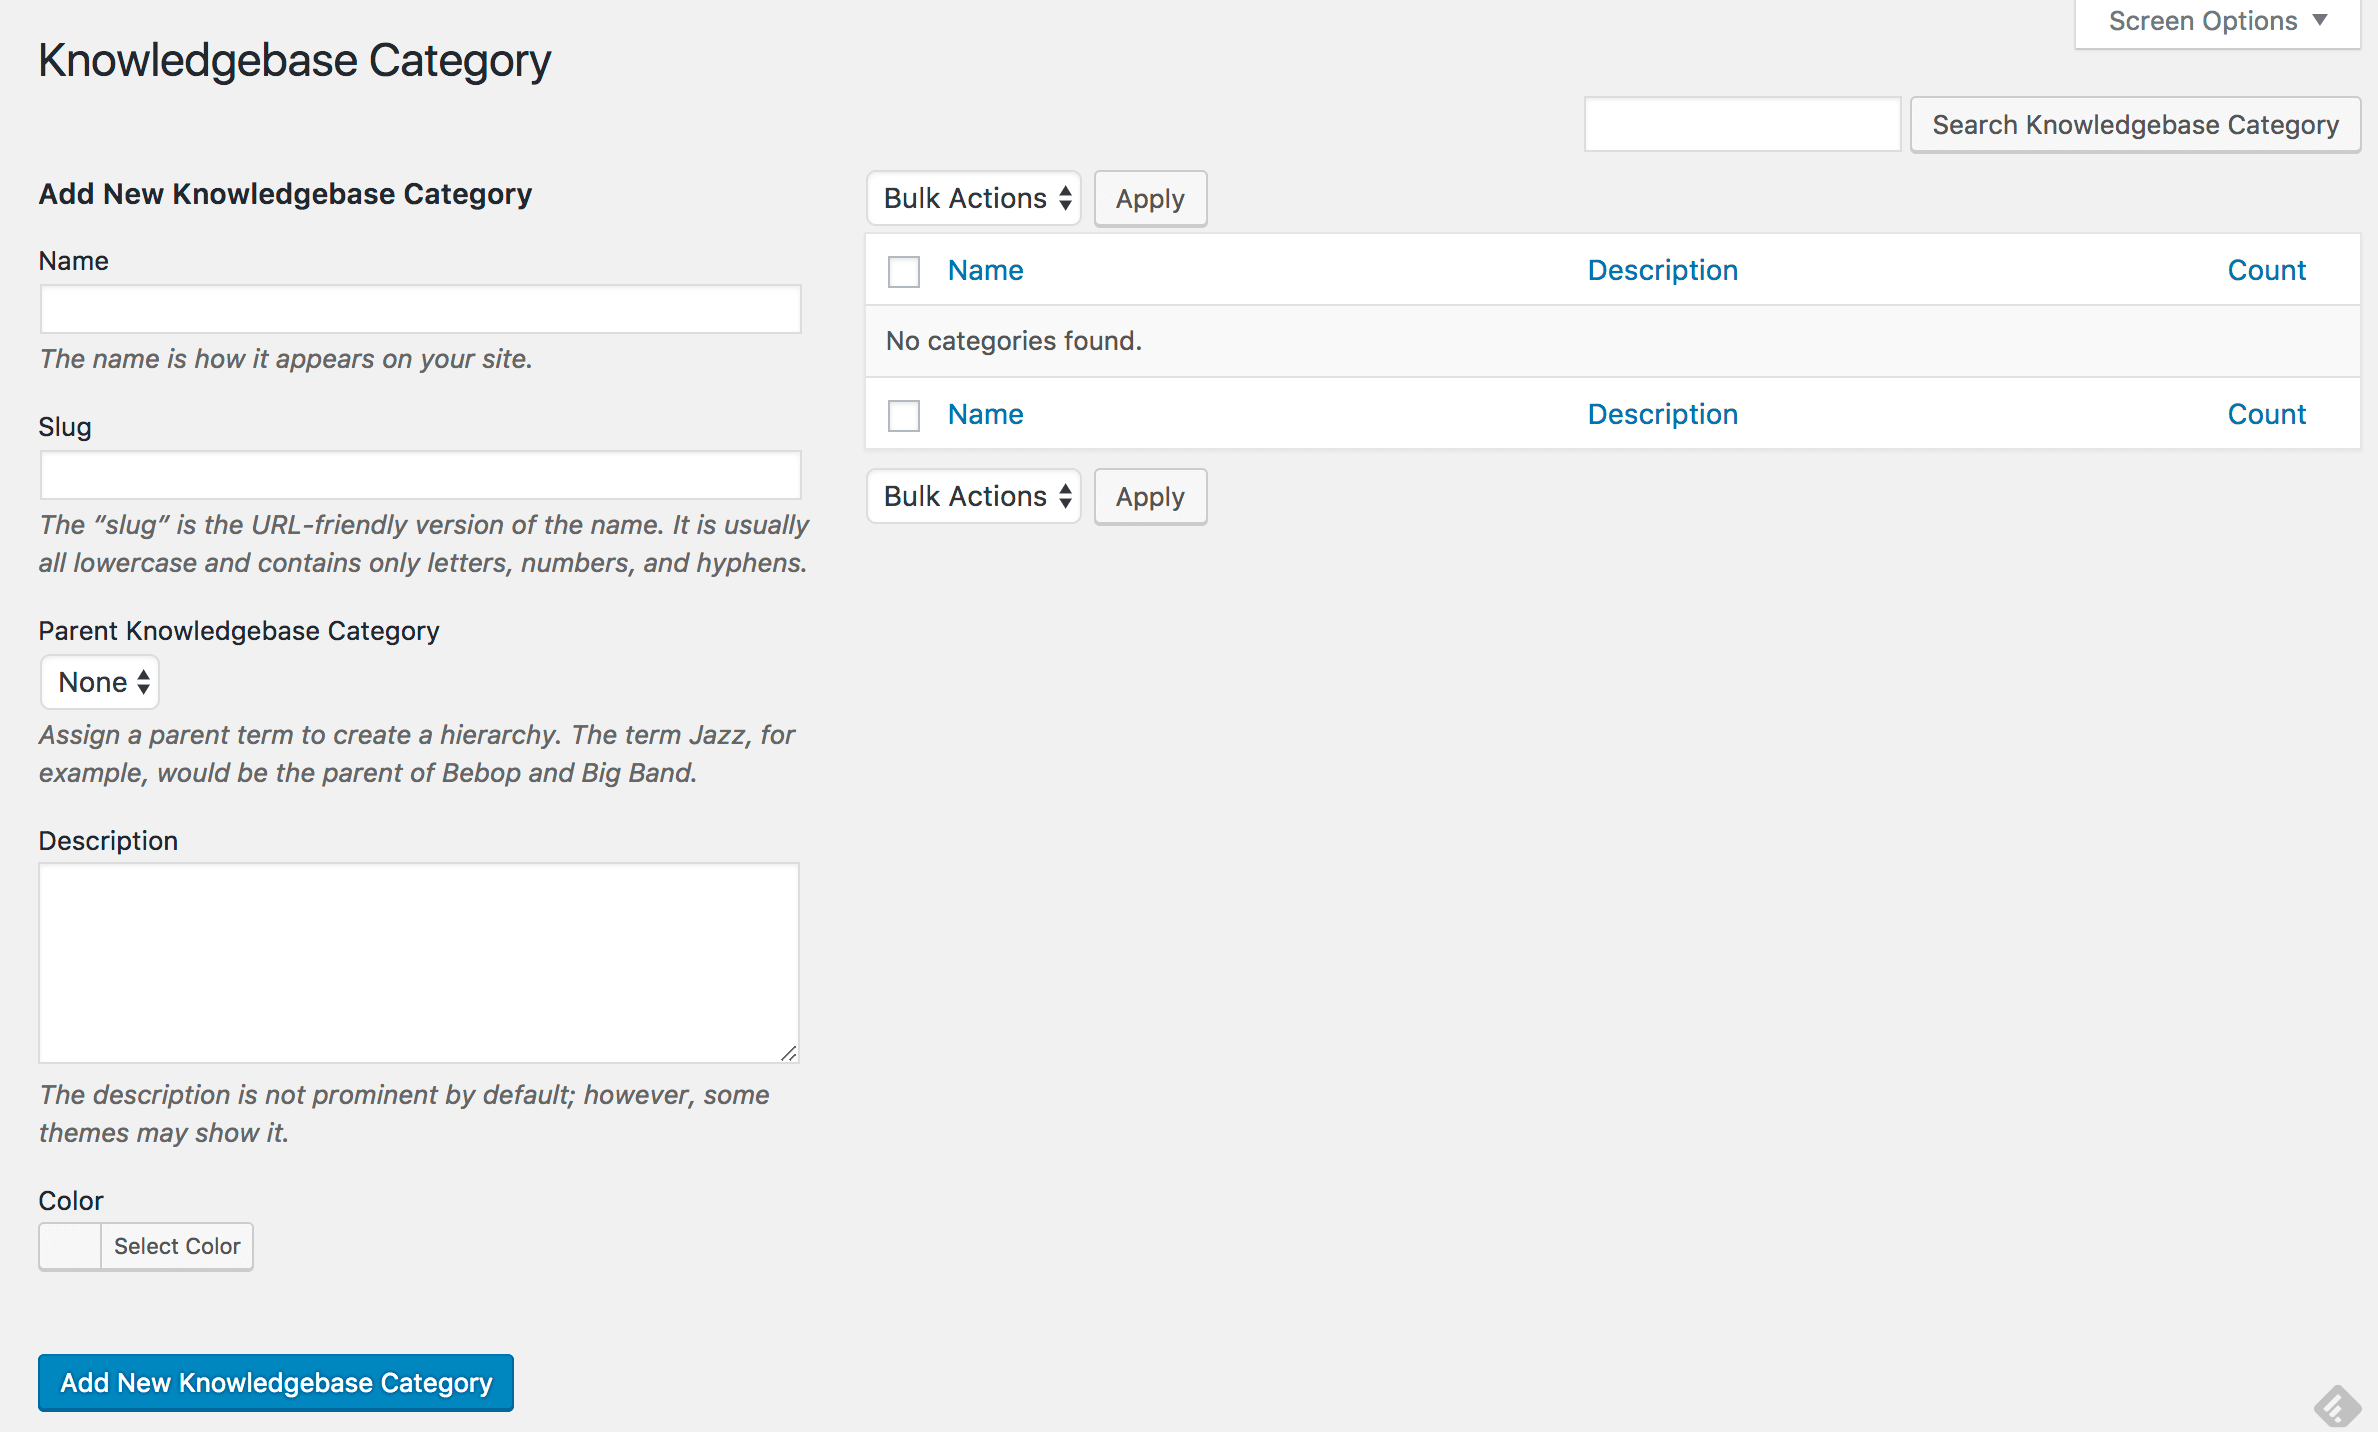 New knowledge base category interface